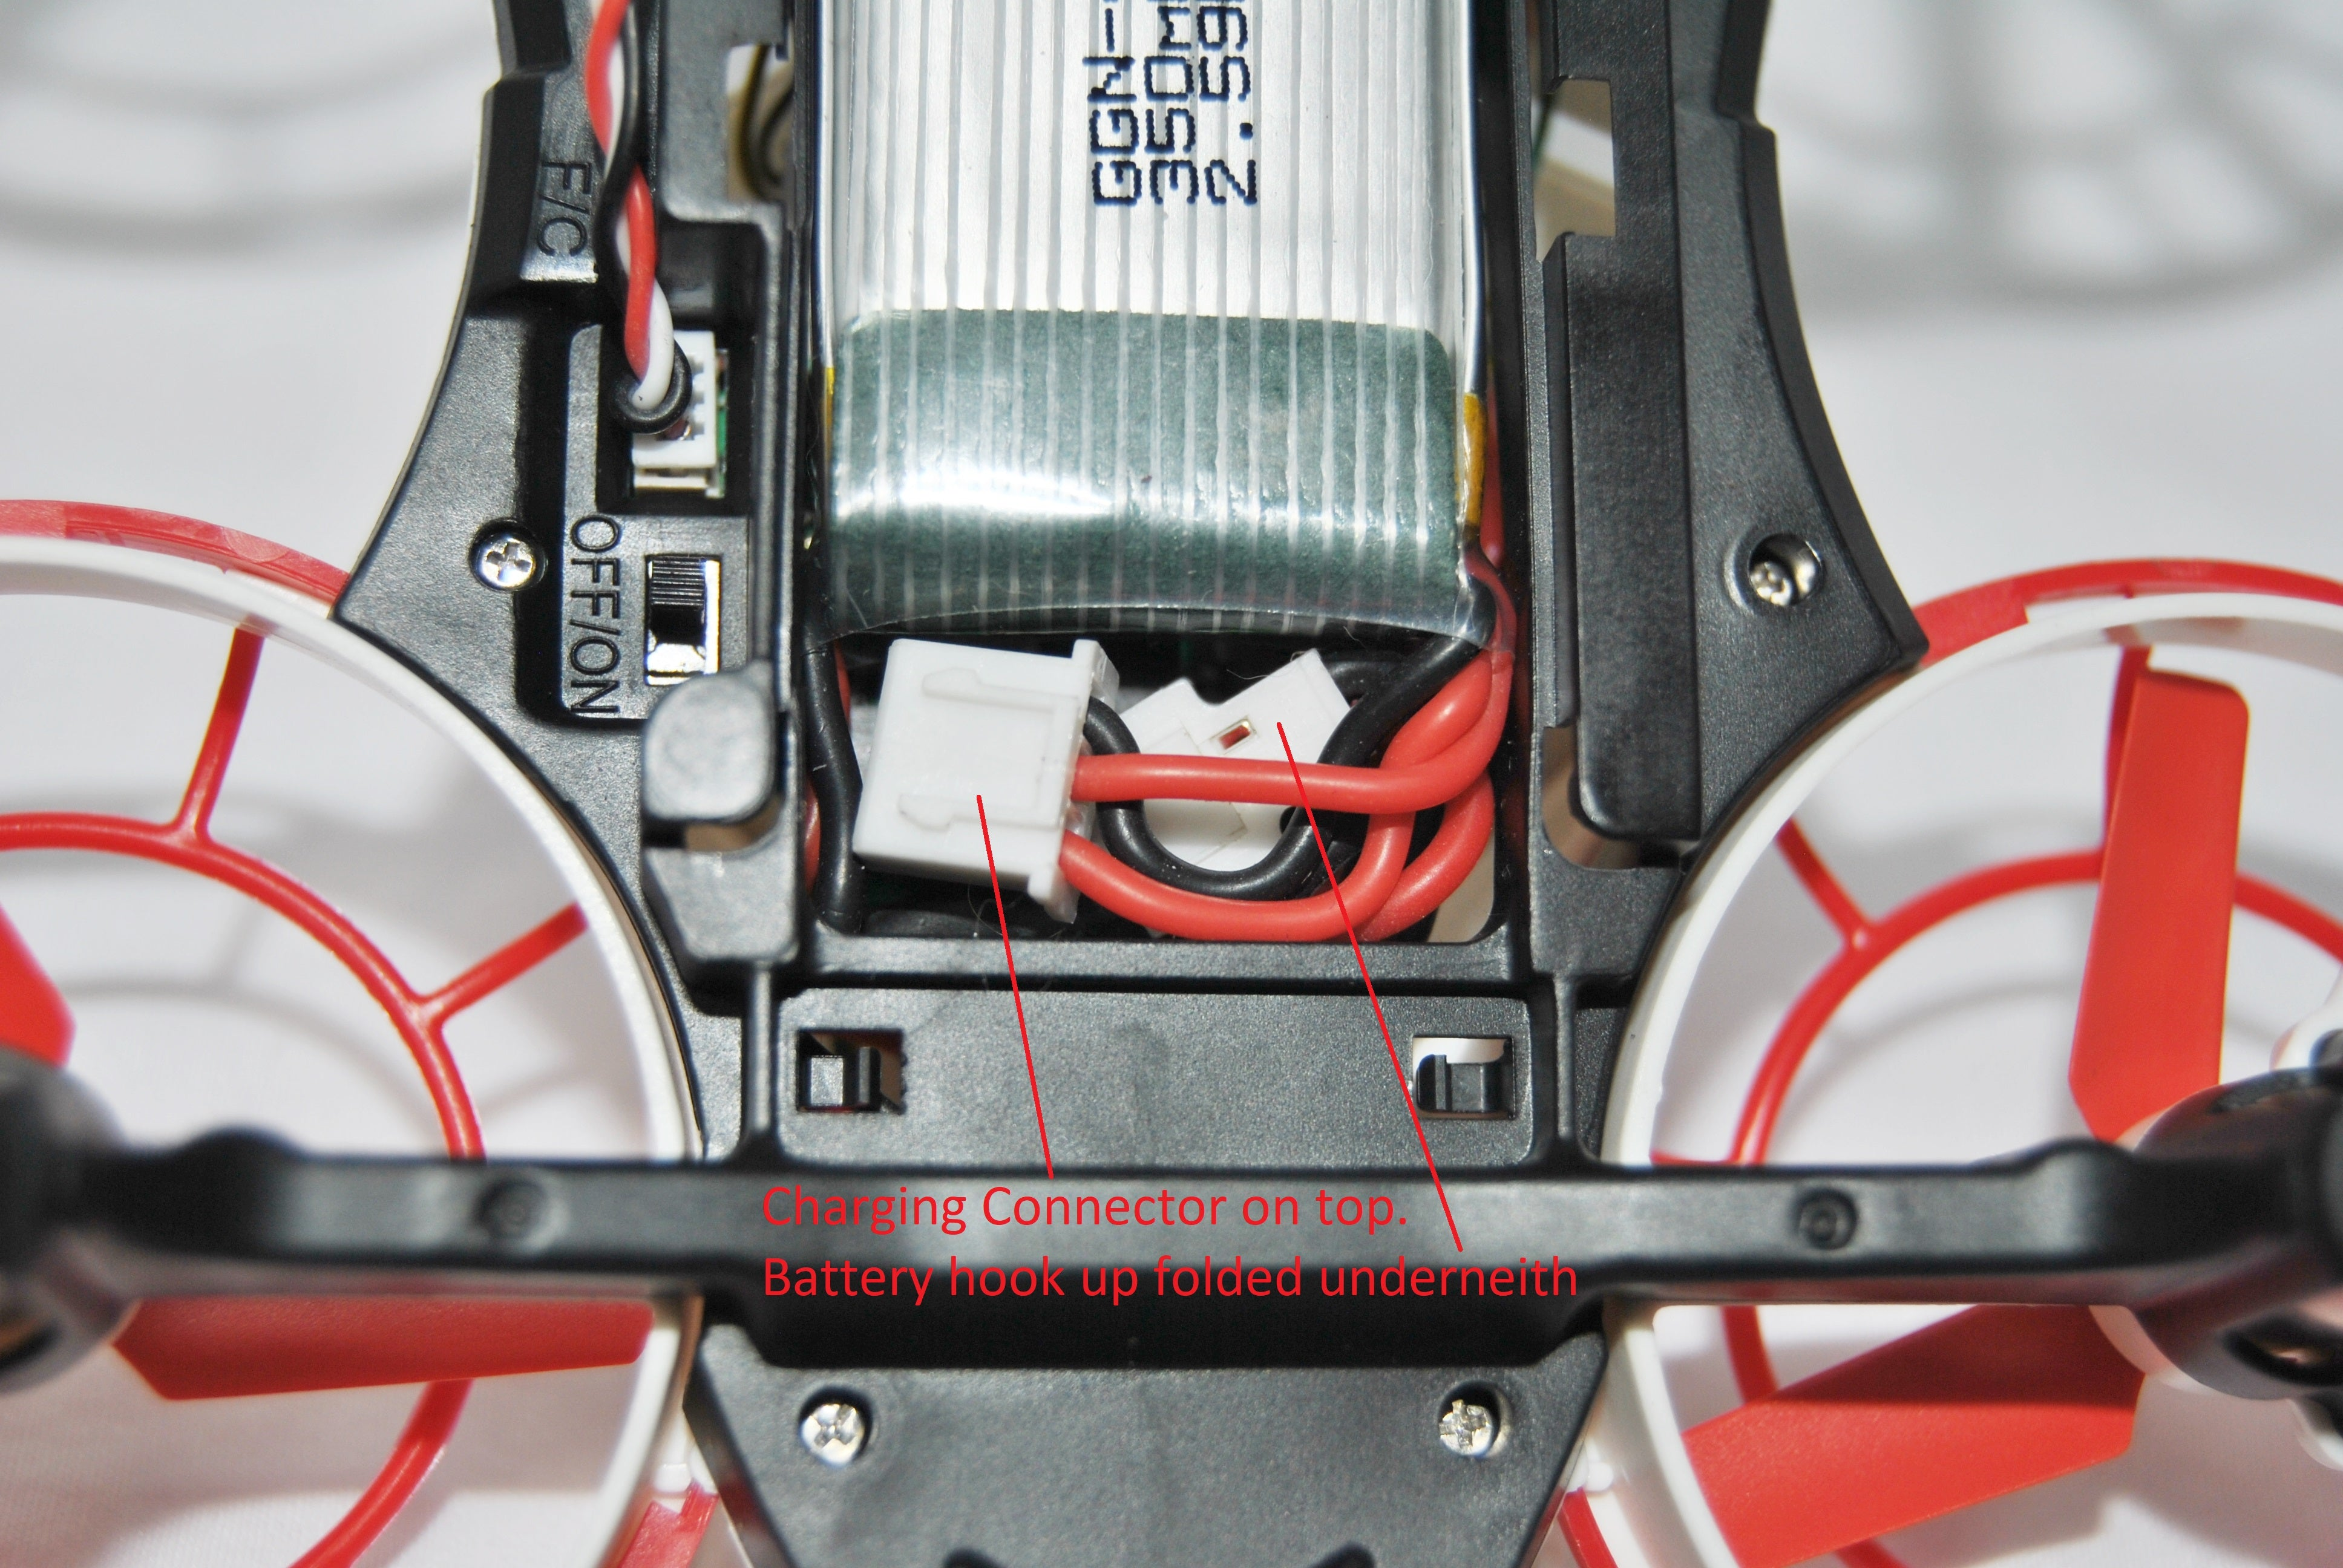 Optix Faq Litehawk Shop Nook Charger Wiring Diagram Tip When Removing Your Battery Disconnect The Drone From By Pulling On Connectors And Not Wires That Way You Wont Break